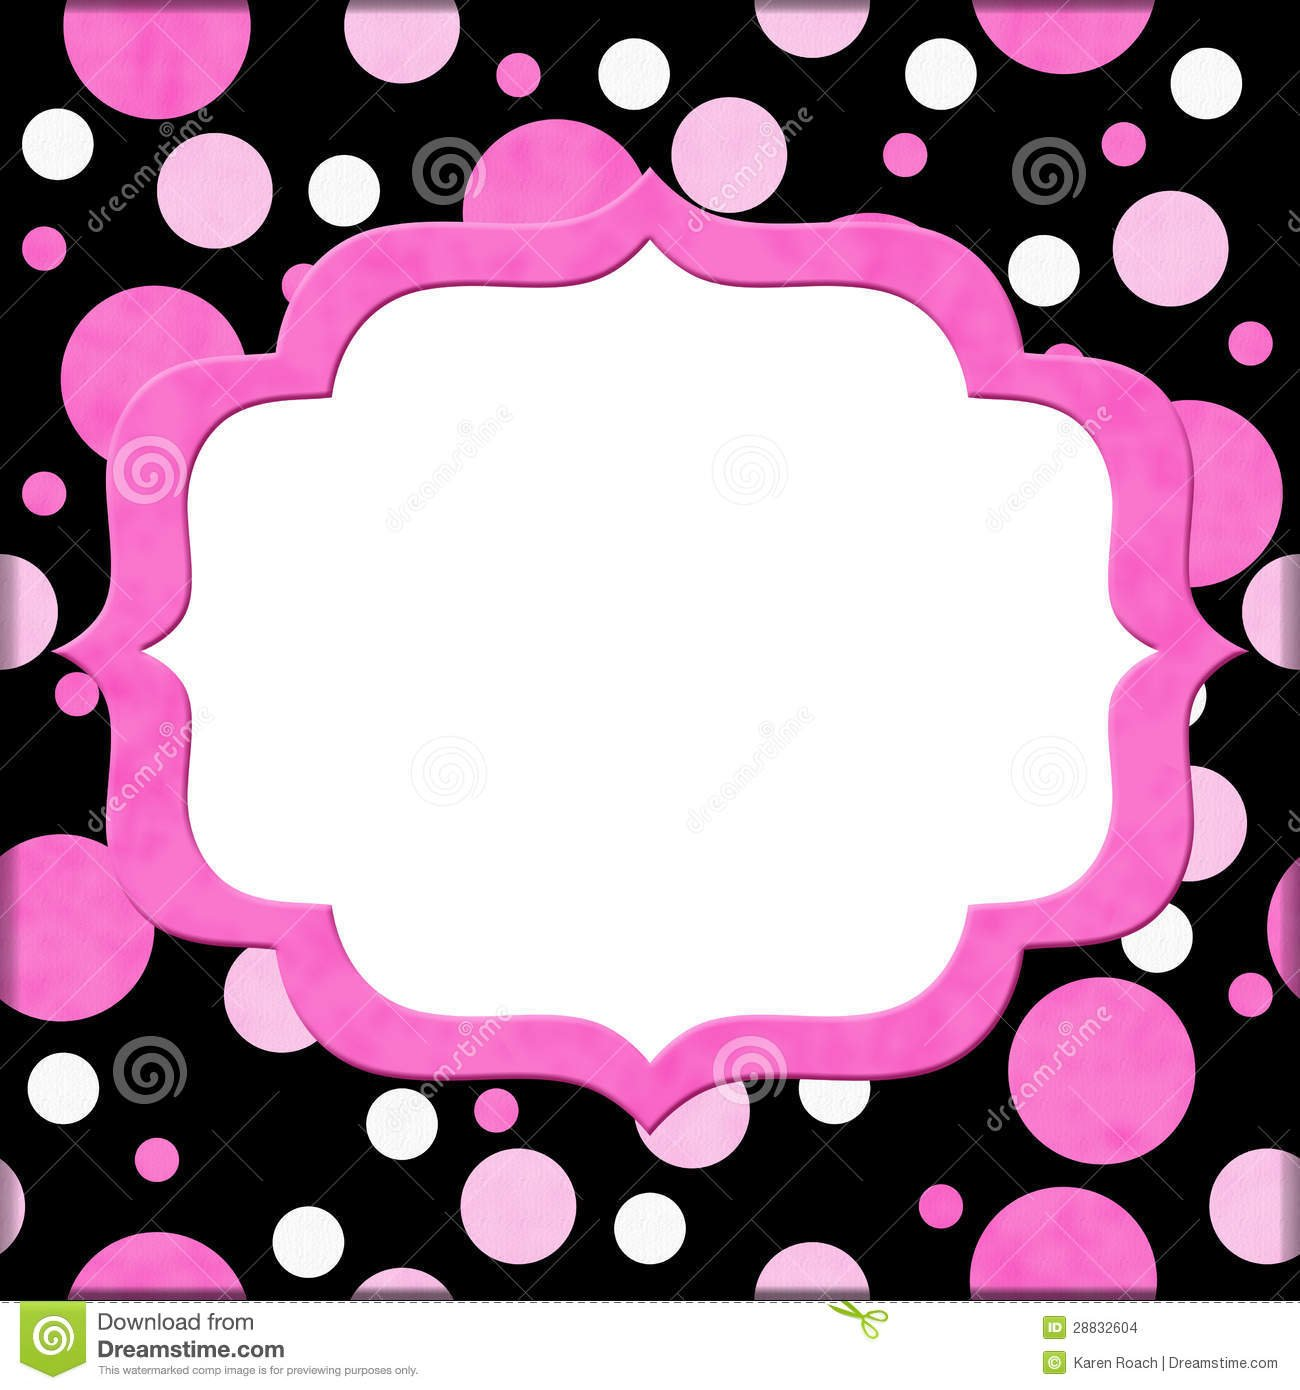 Pink Polka Dot Wallpaper: Black Polka Dot Wallpaper